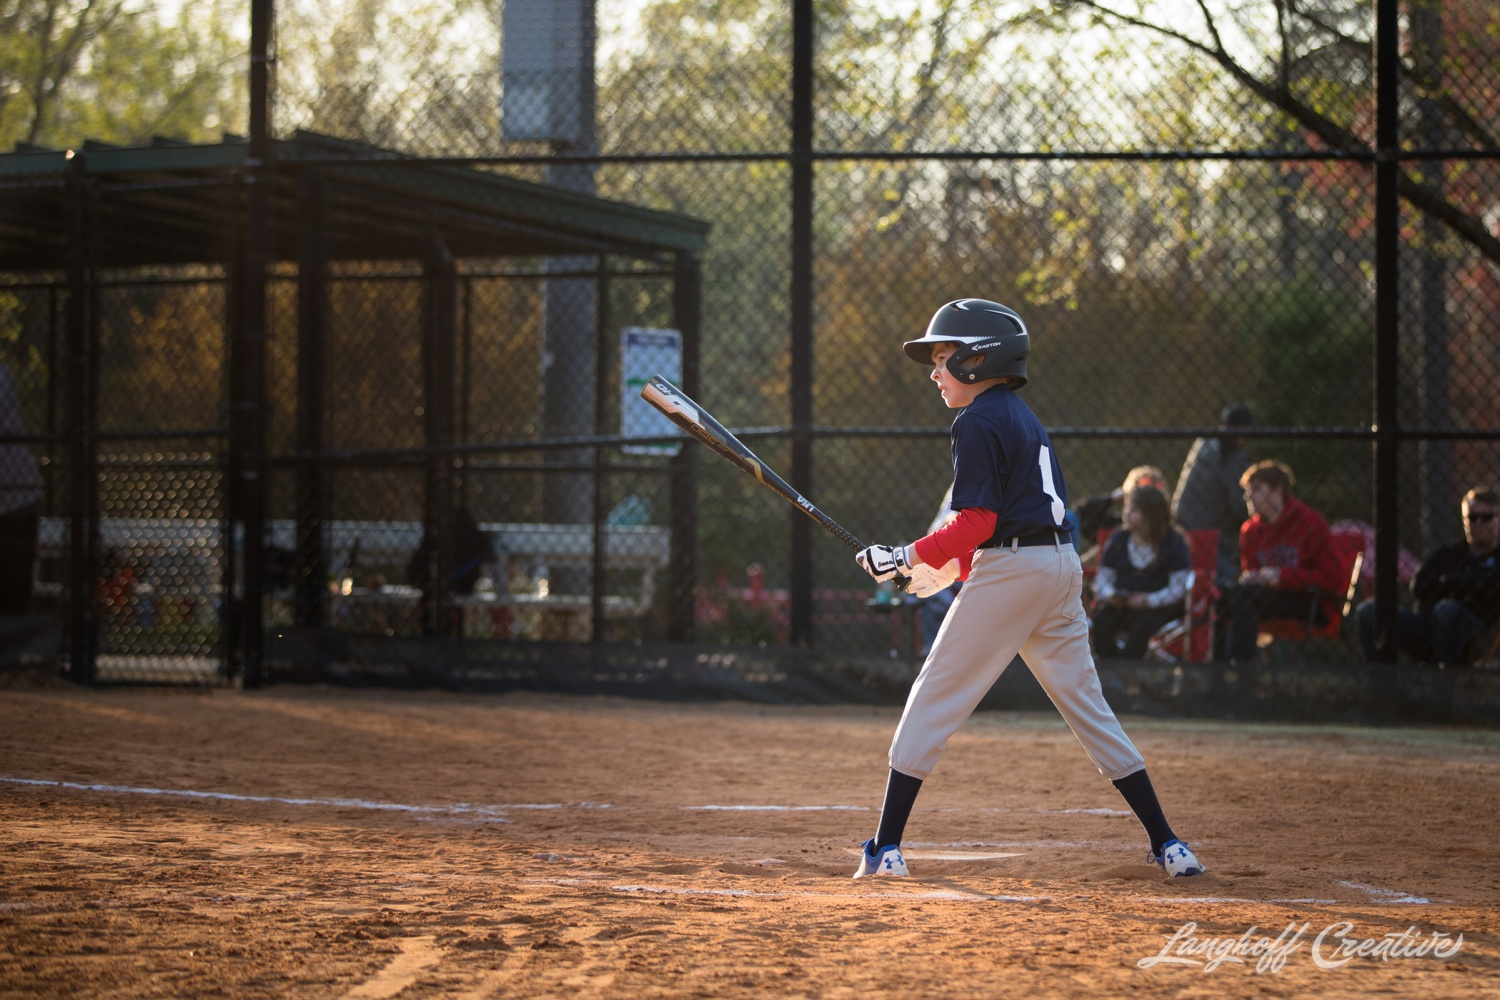 DocumentaryFamilySession-DocumentaryFamilyPhotography-RDUfamily-Baseball-RealLifeSession-LanghoffCreative-George-2018-11-image.jpg